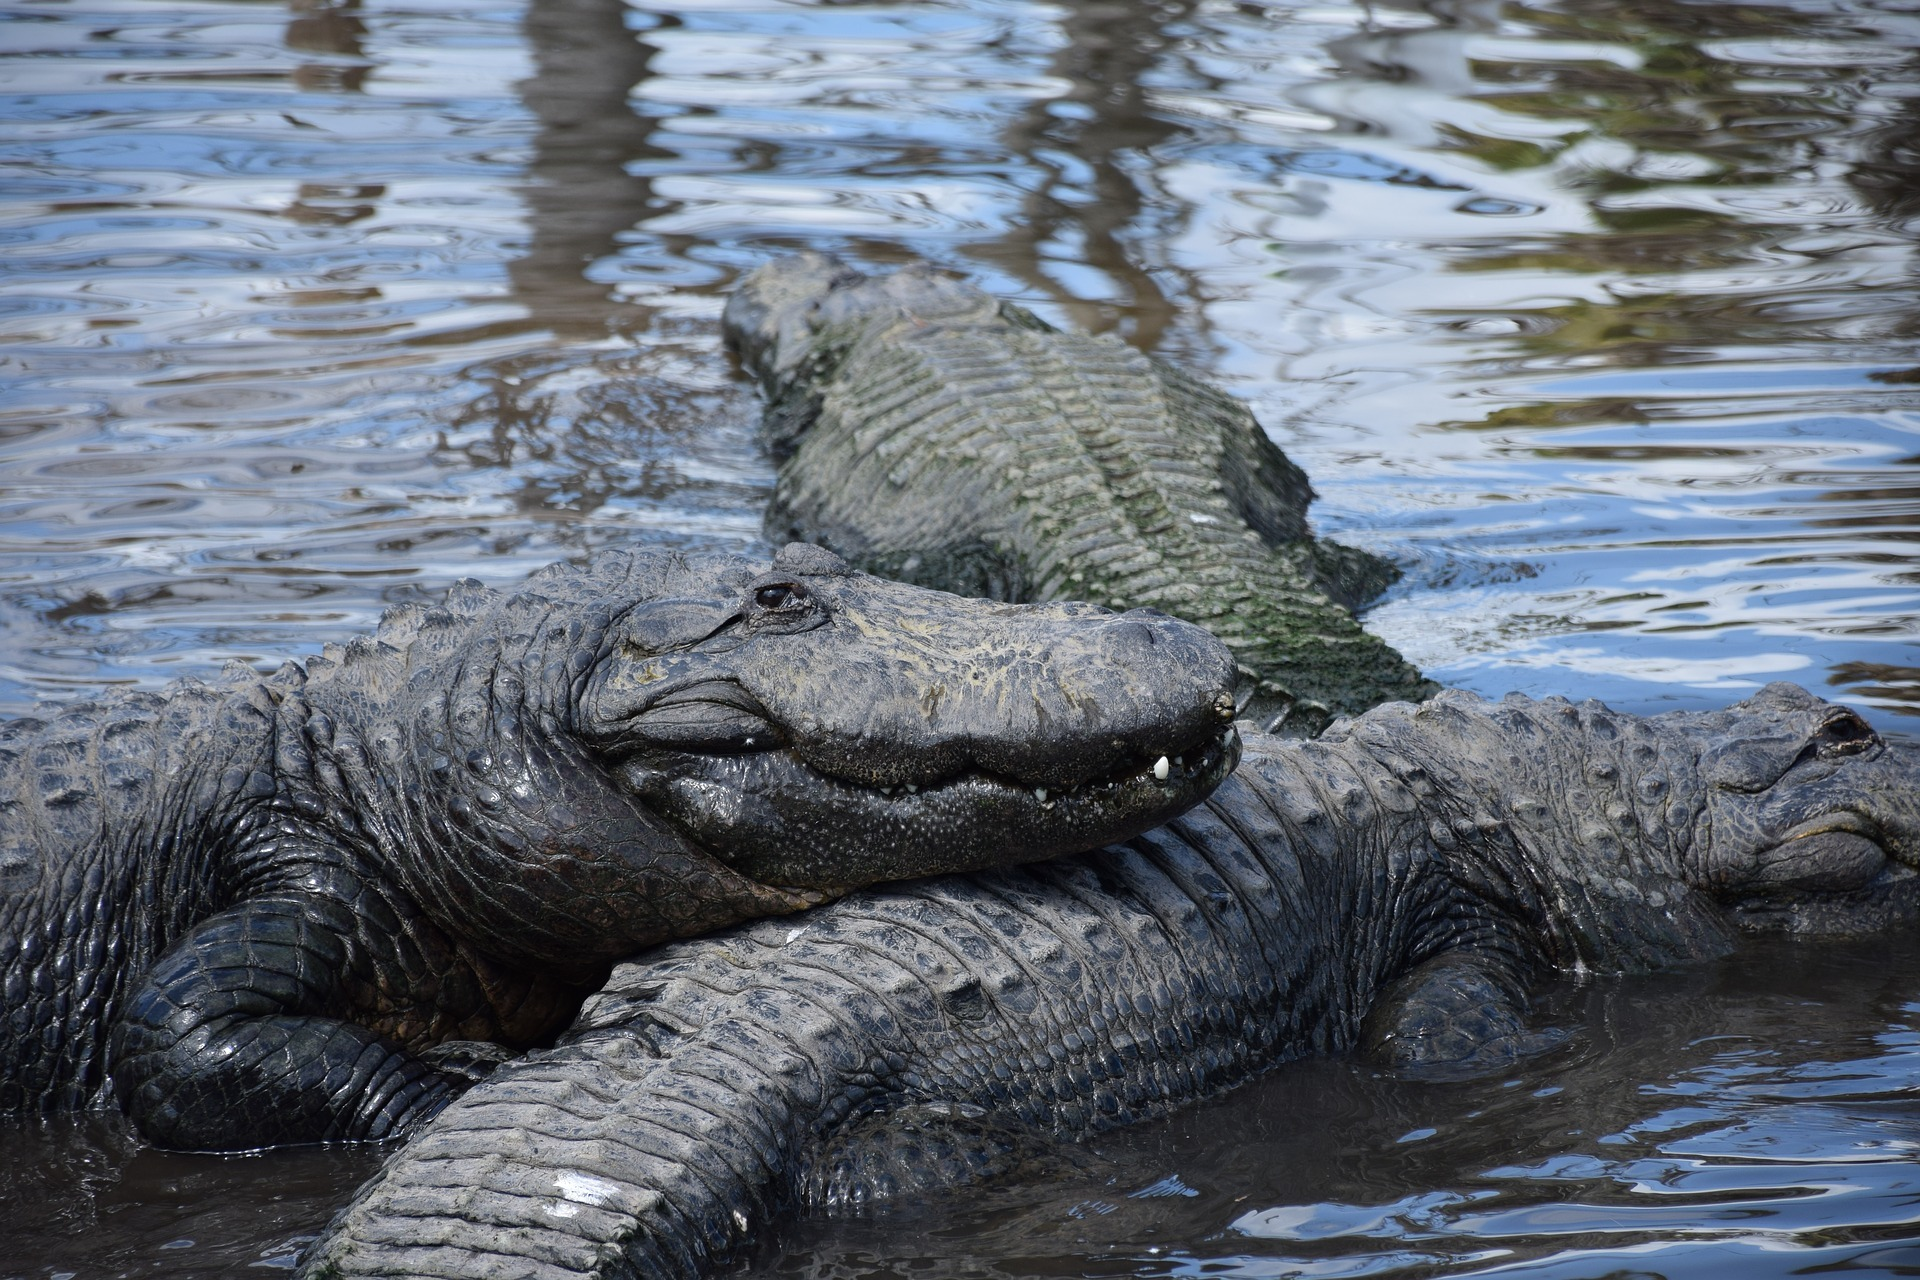 Gators huddle in the water together at Gatorland.